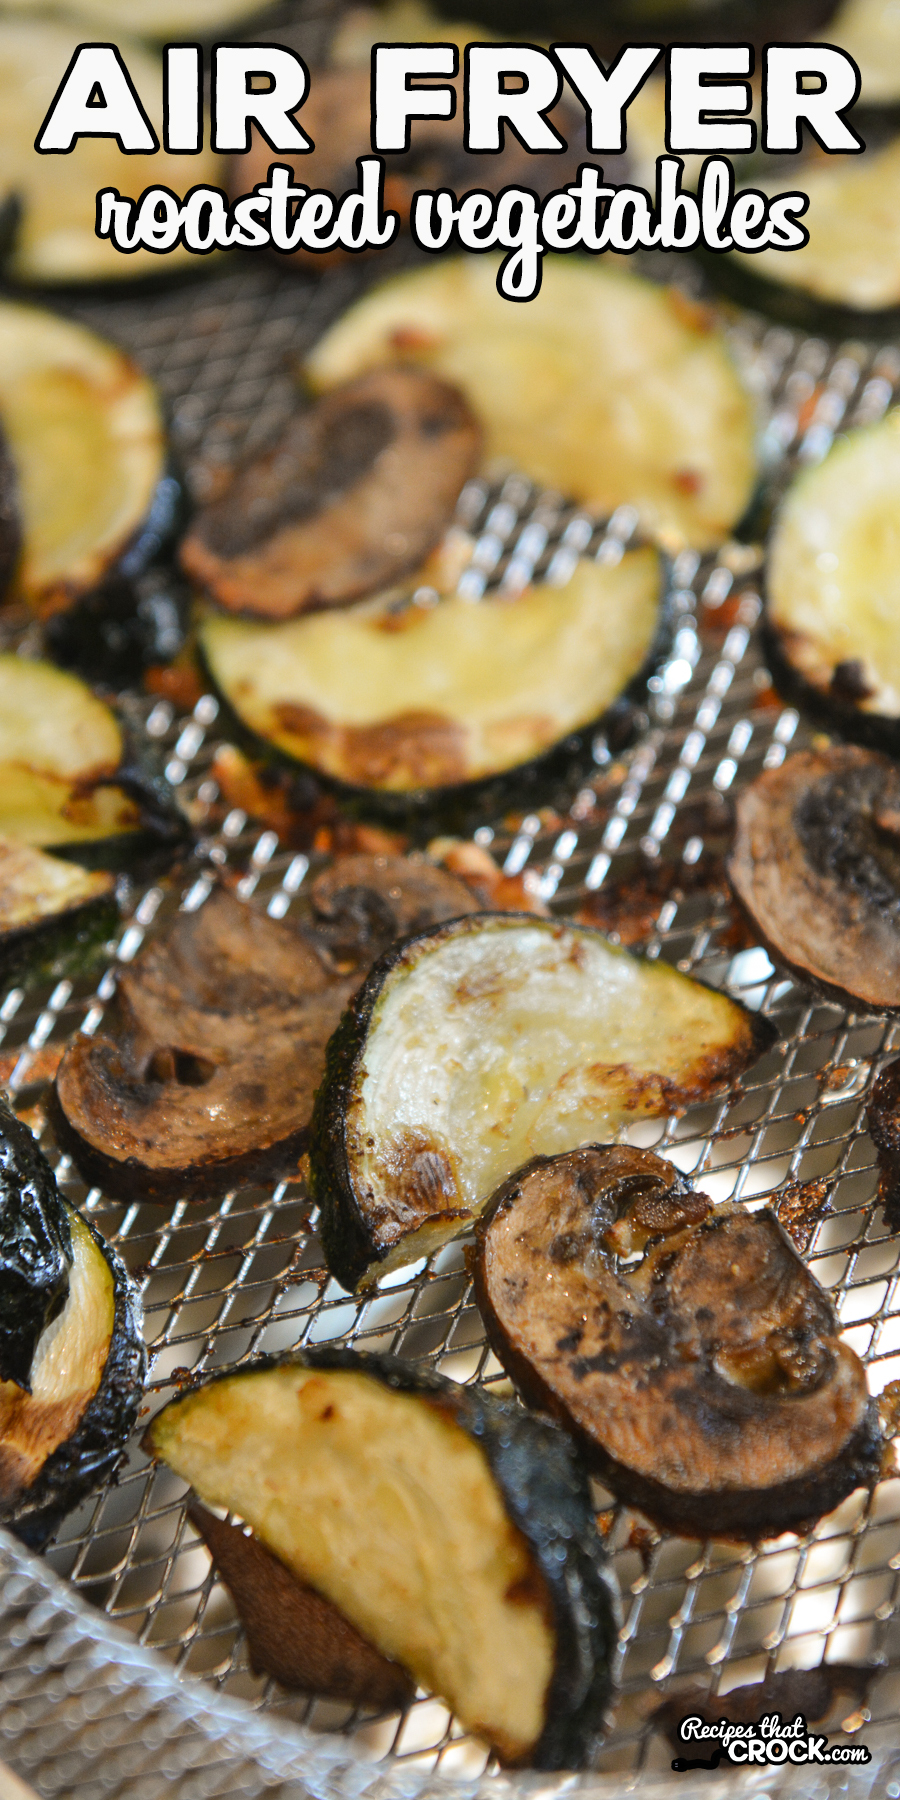 Air Fryer Roasted Vegetables are an easy recipe to toss in your air fryer and enjoy as a savory side dish for just about any meal. We like to make these in our traditional air fryer, Ninja Foodi and Ninja Foodi Air Fry Oven. via @recipescrock